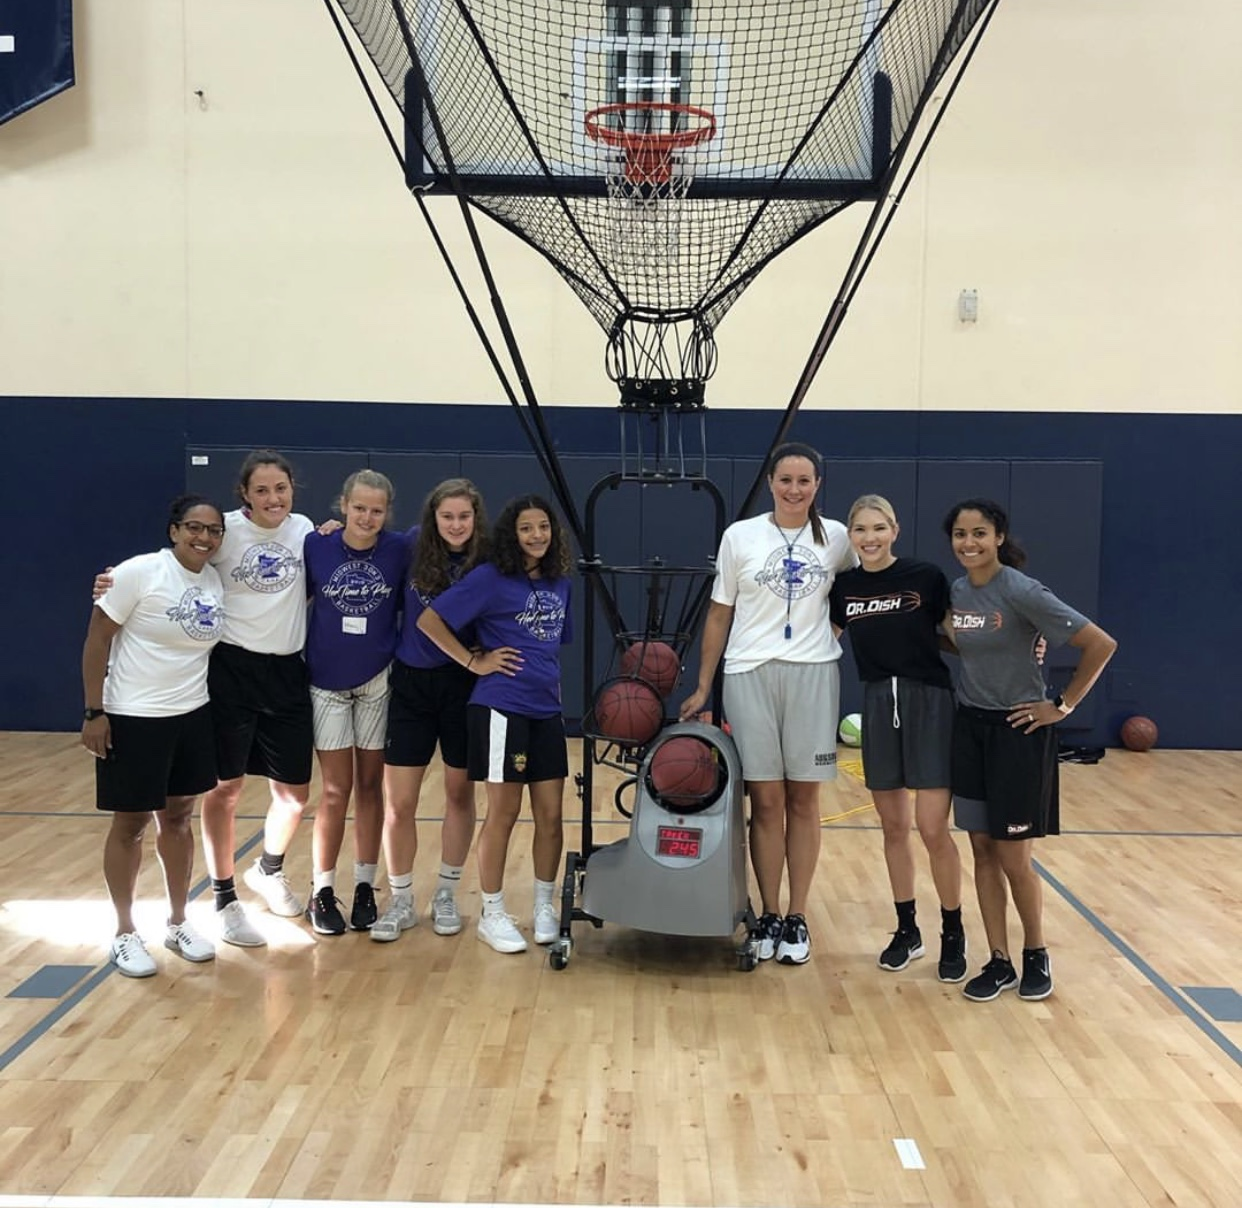 It's Her Time to Play: All Girls Basketball Camp